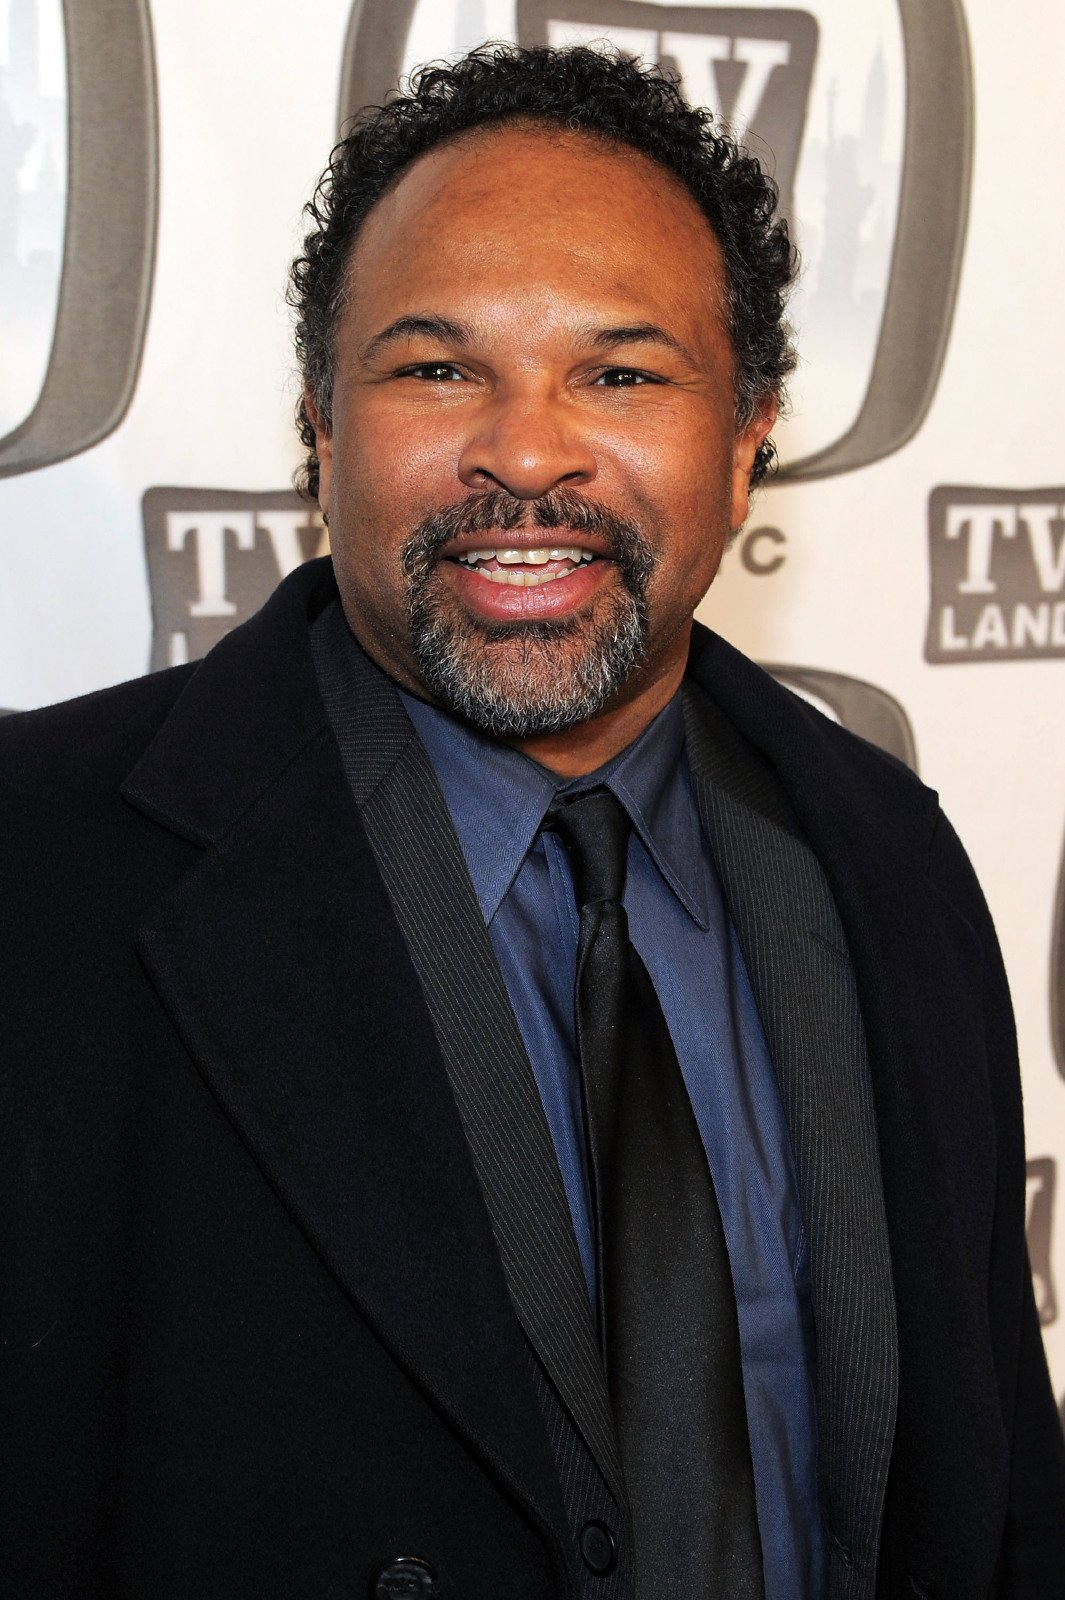 Geoffrey Owens at the 9th Annual TV Land Awards at the Javits Center on April 10, 2011 | Photo: Getty Images